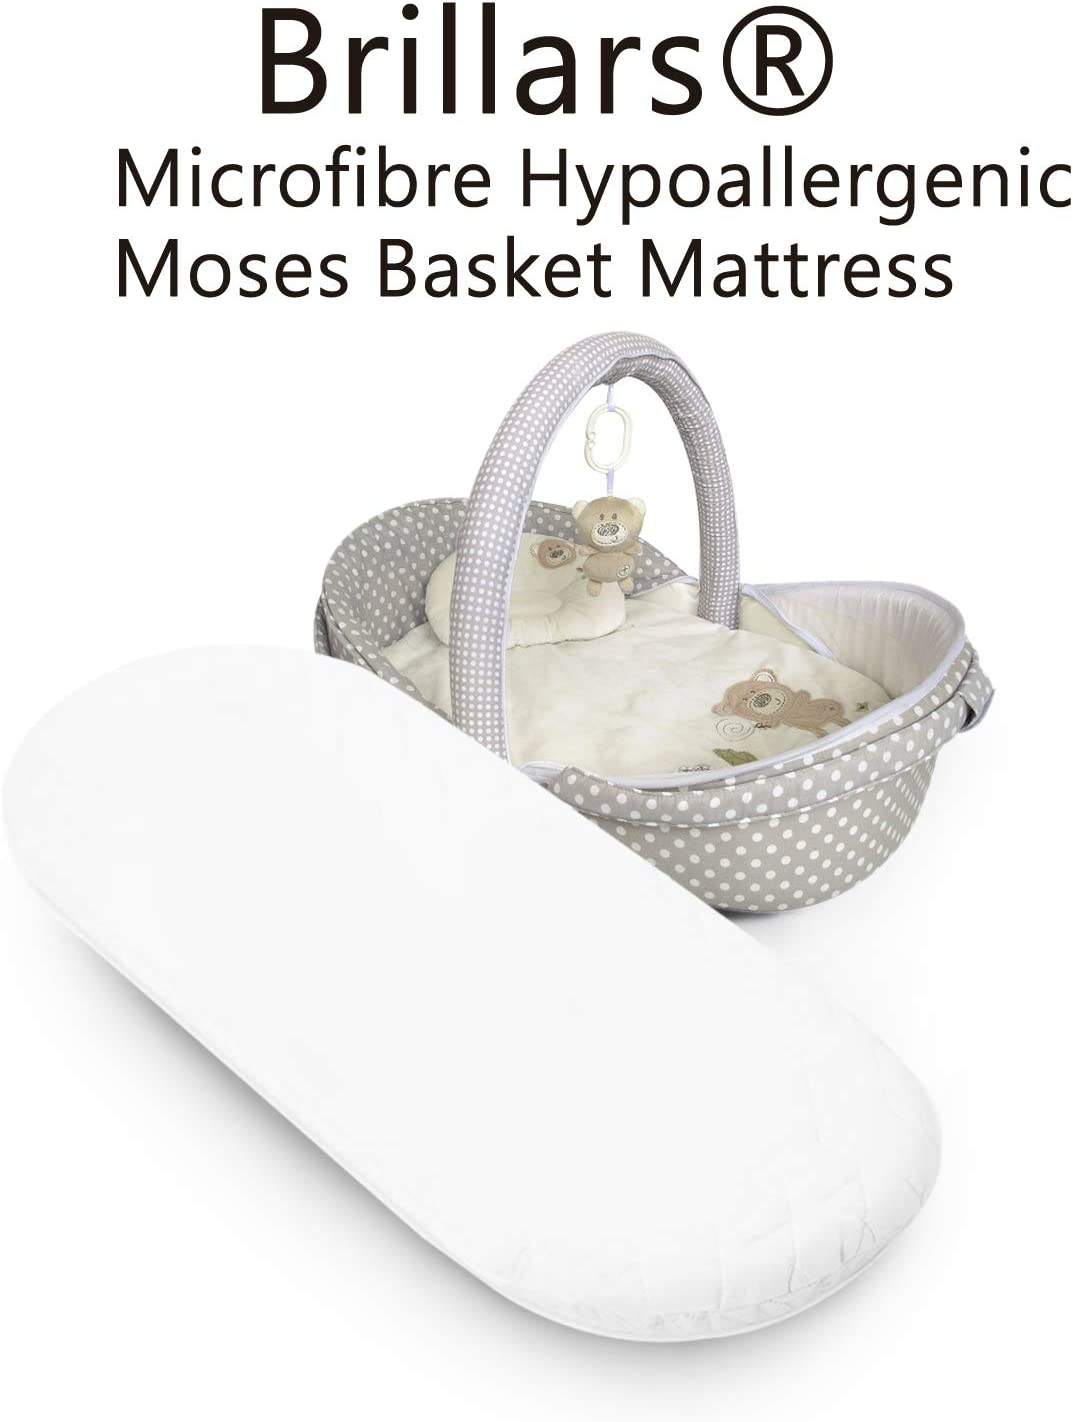 Oval Baby Cot Mattress with Removable Cover Breathable| Anti-Fungal| Foam Mattress to Fit Crib//Cradle//Pram Brillars/® Microfibre Hypoallergenic Moses Basket Mattress 72 x 28 x 4 cm